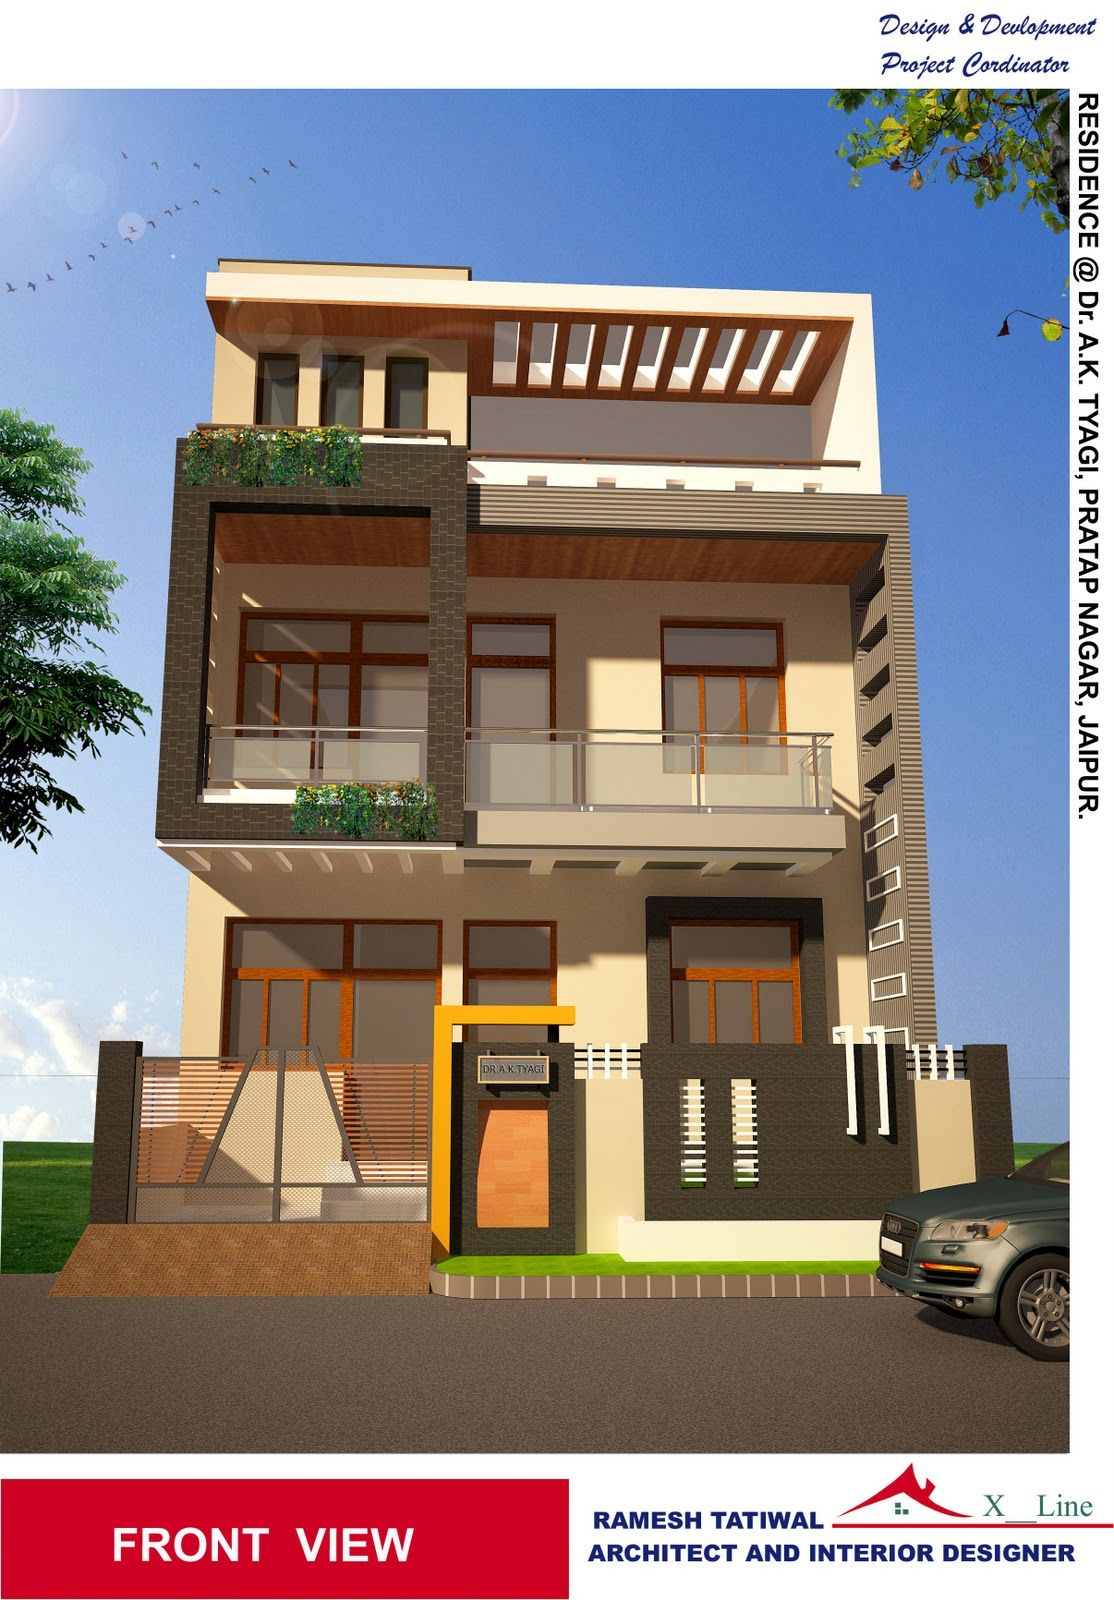 Housedesigns modern indian home architecture design from Indian house exterior design